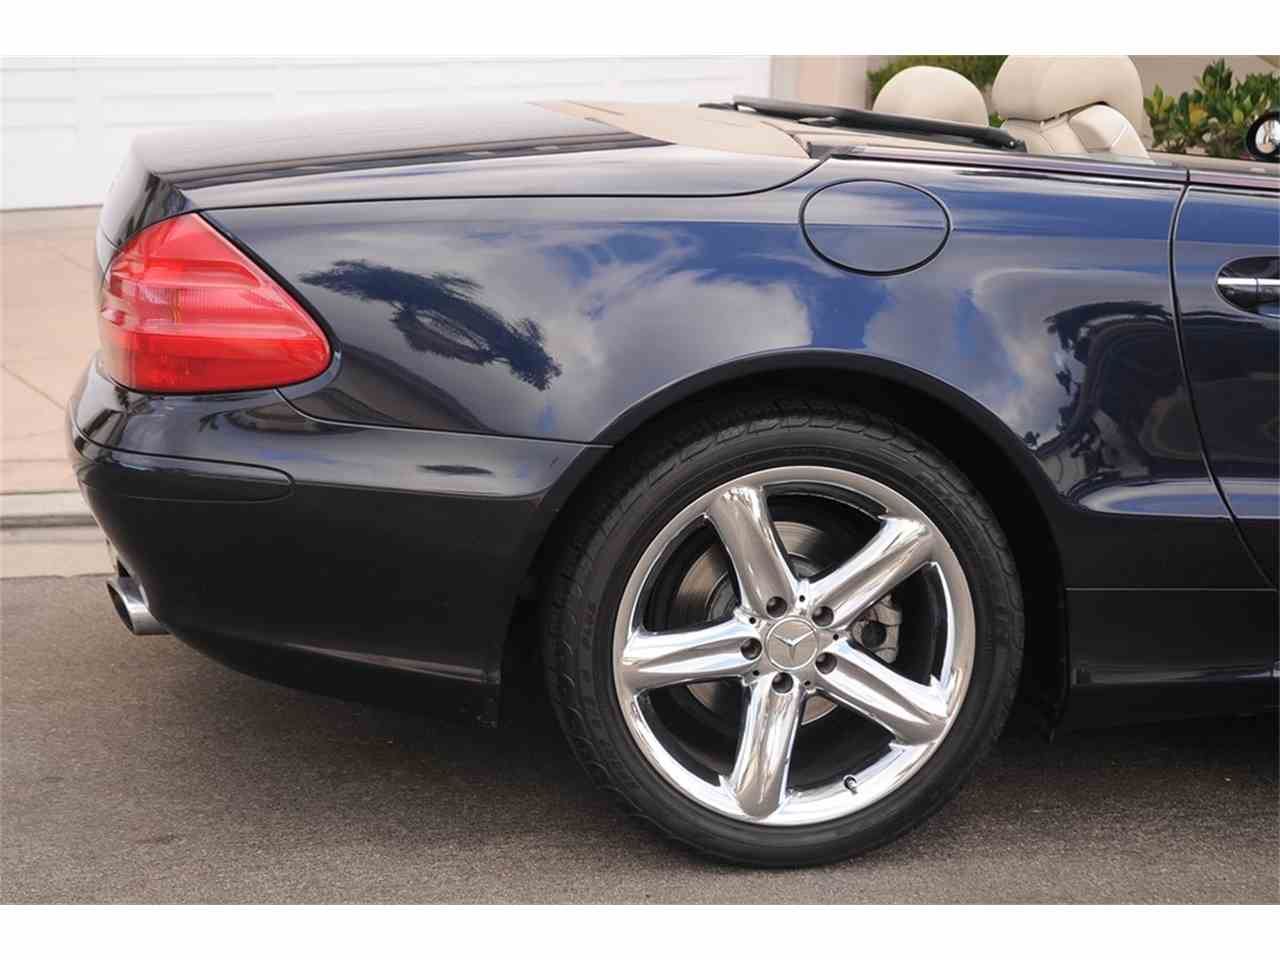 Large Picture of 2003 Mercedes-Benz SL500 located in Costa Mesa California - $13,990.00 - M694